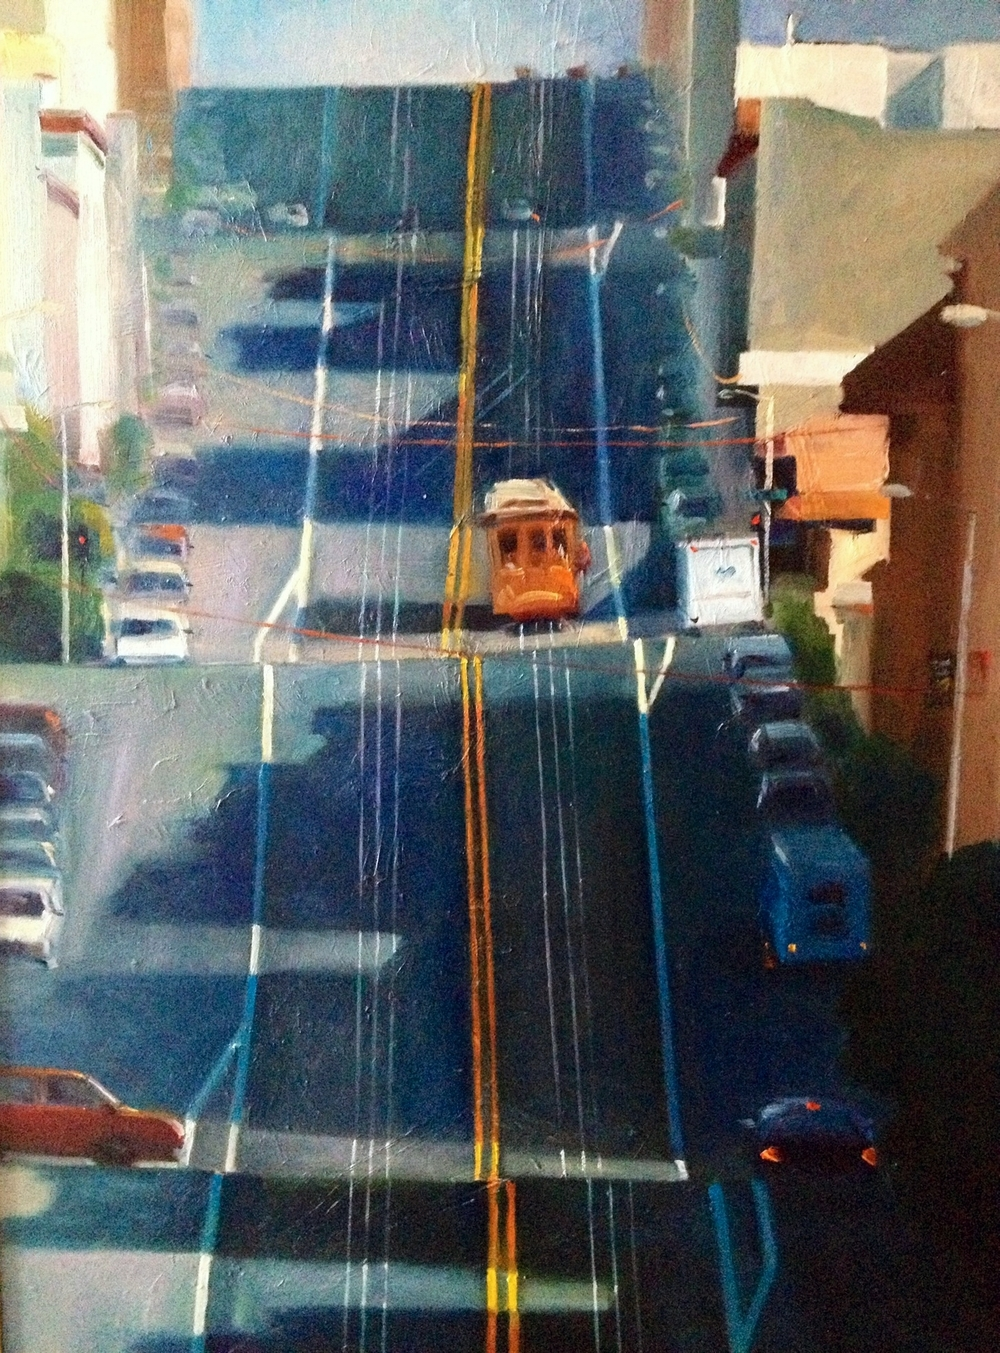 CALIFORNIA STREET (SOLD)